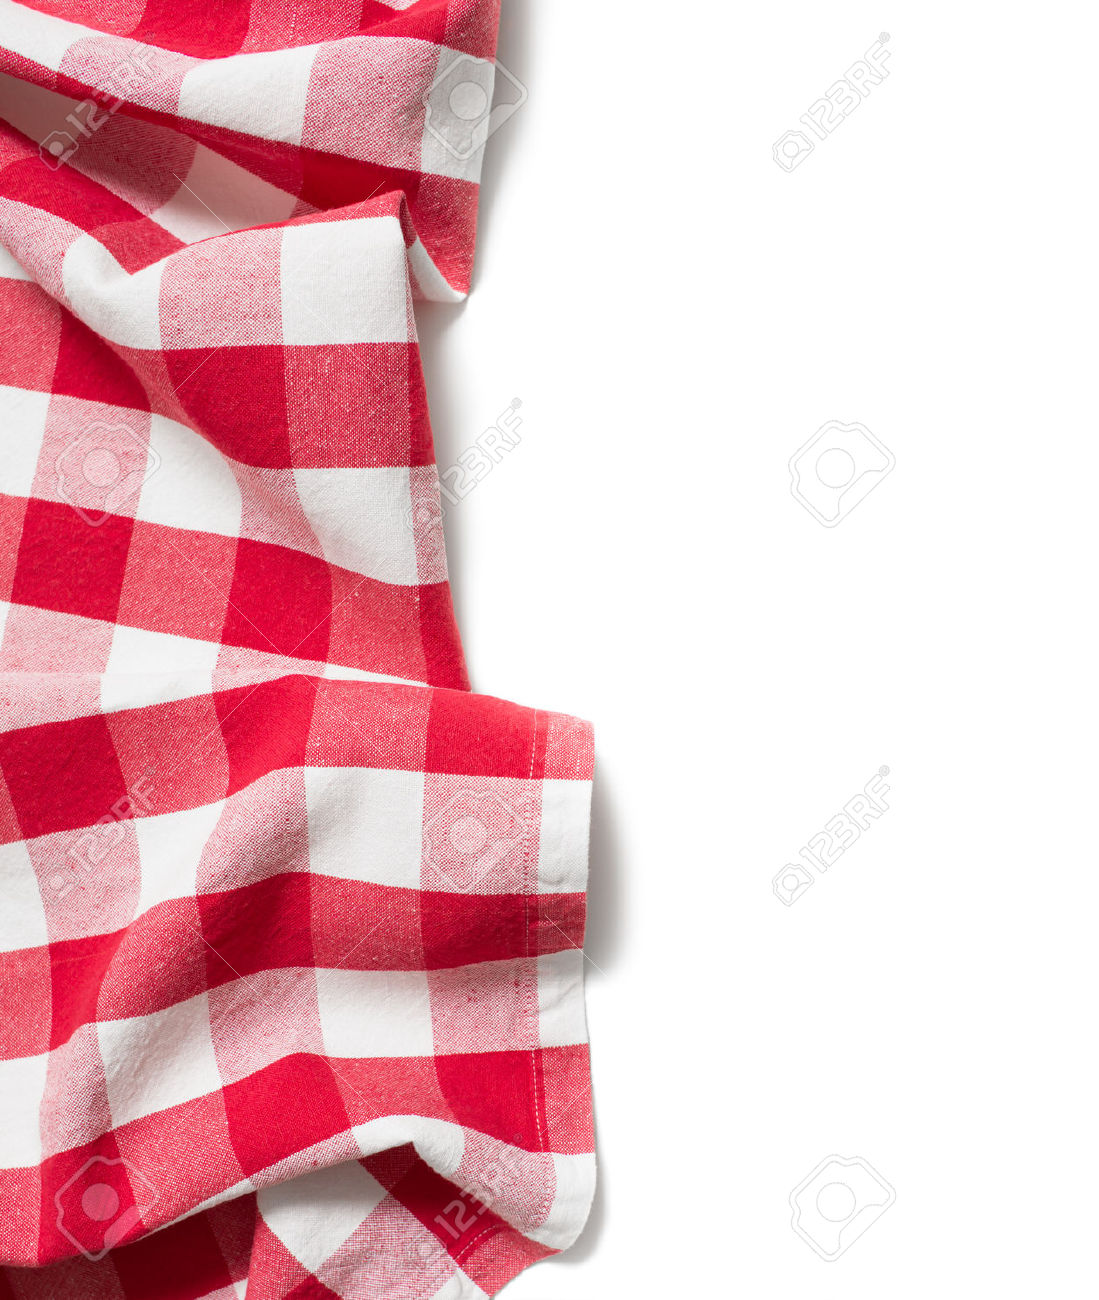 Checkered Border Stock Photos Images. Royalty Free Checkered.